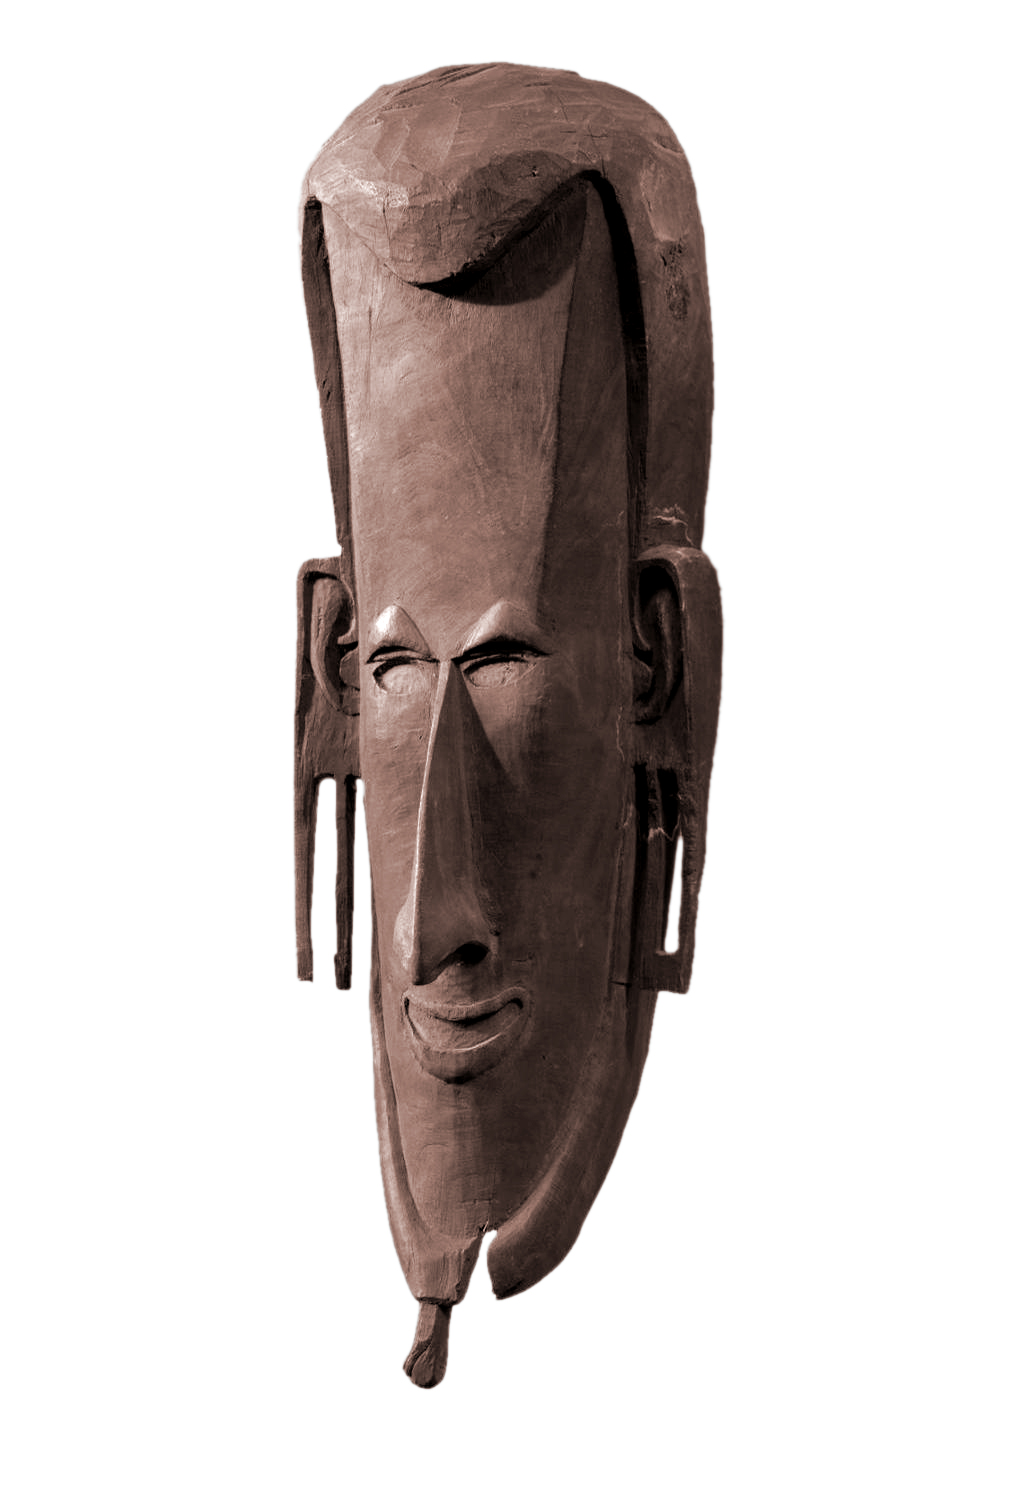 Mask | Torres Strait © University of Pennsylvania Museum of Archaeology and Anthropology